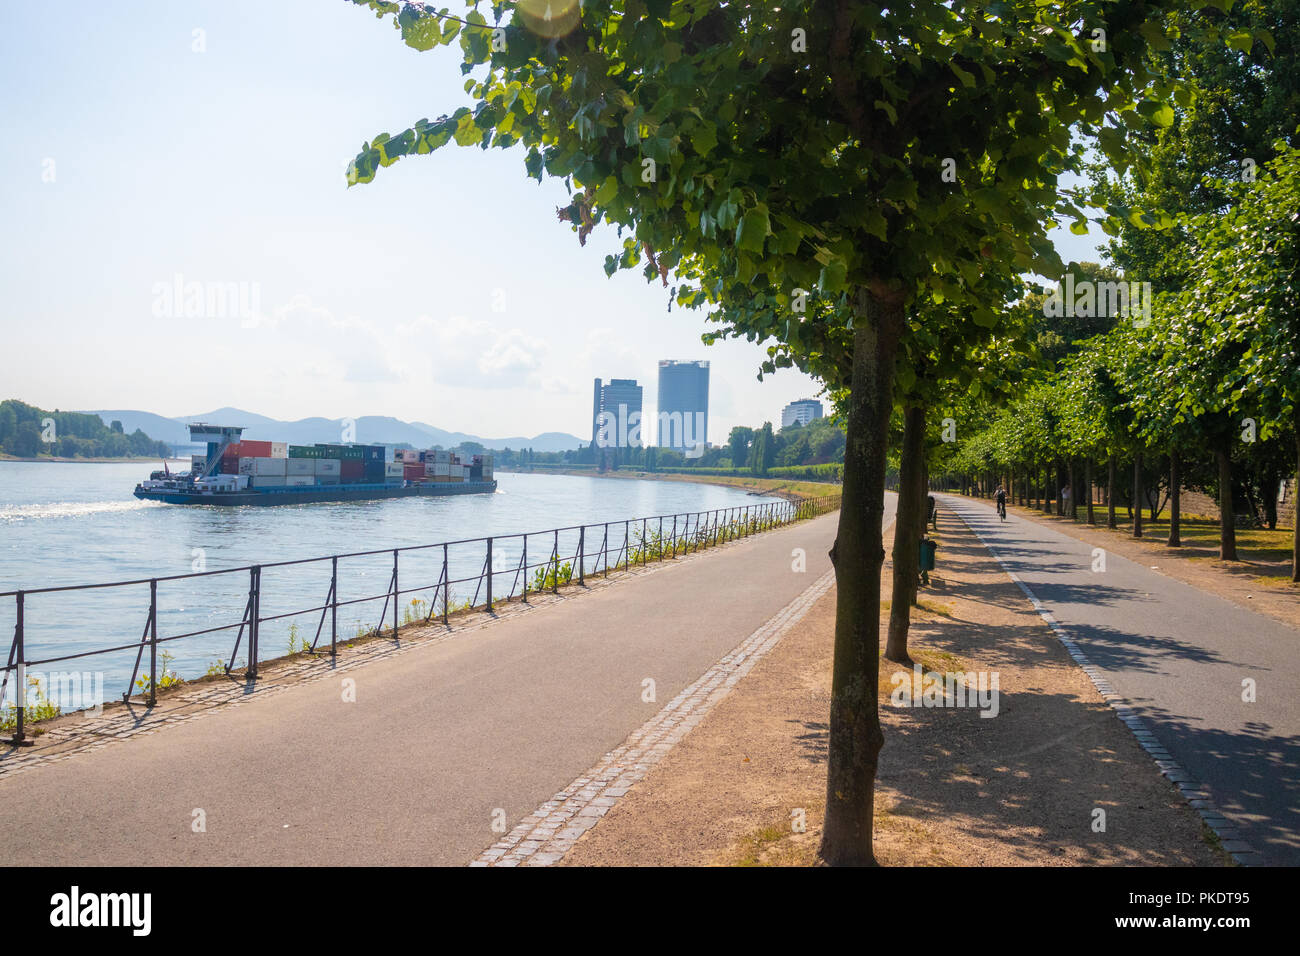 A view along the River Rhine Cycle and Footpaths with a cargo ship on the Rhine. Stock Photo